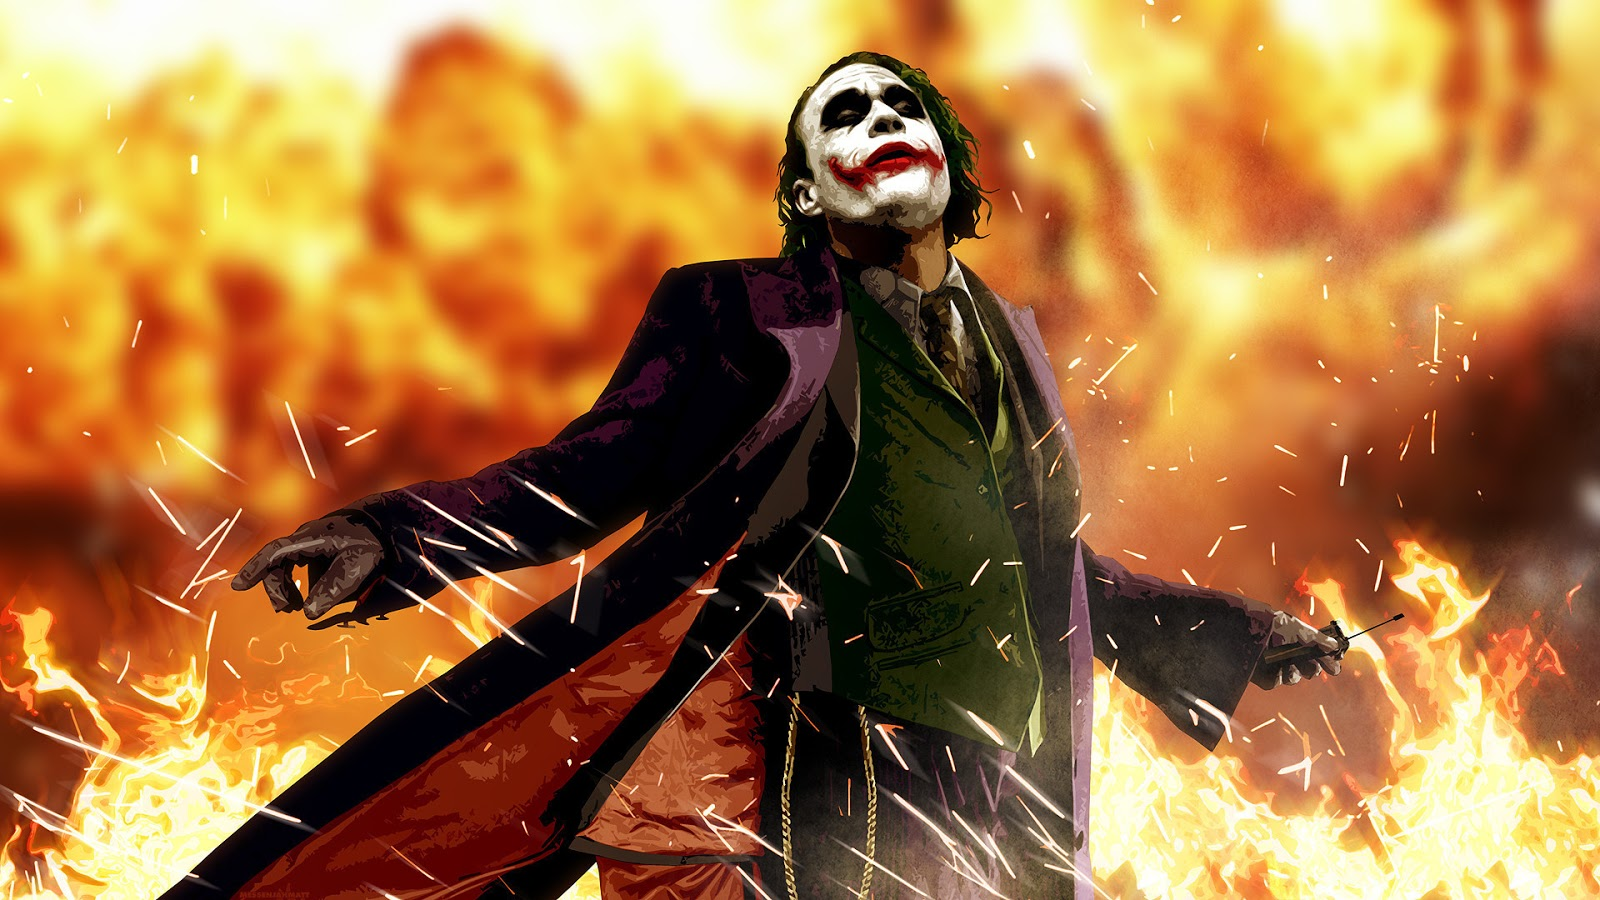 Joker Wallpapers